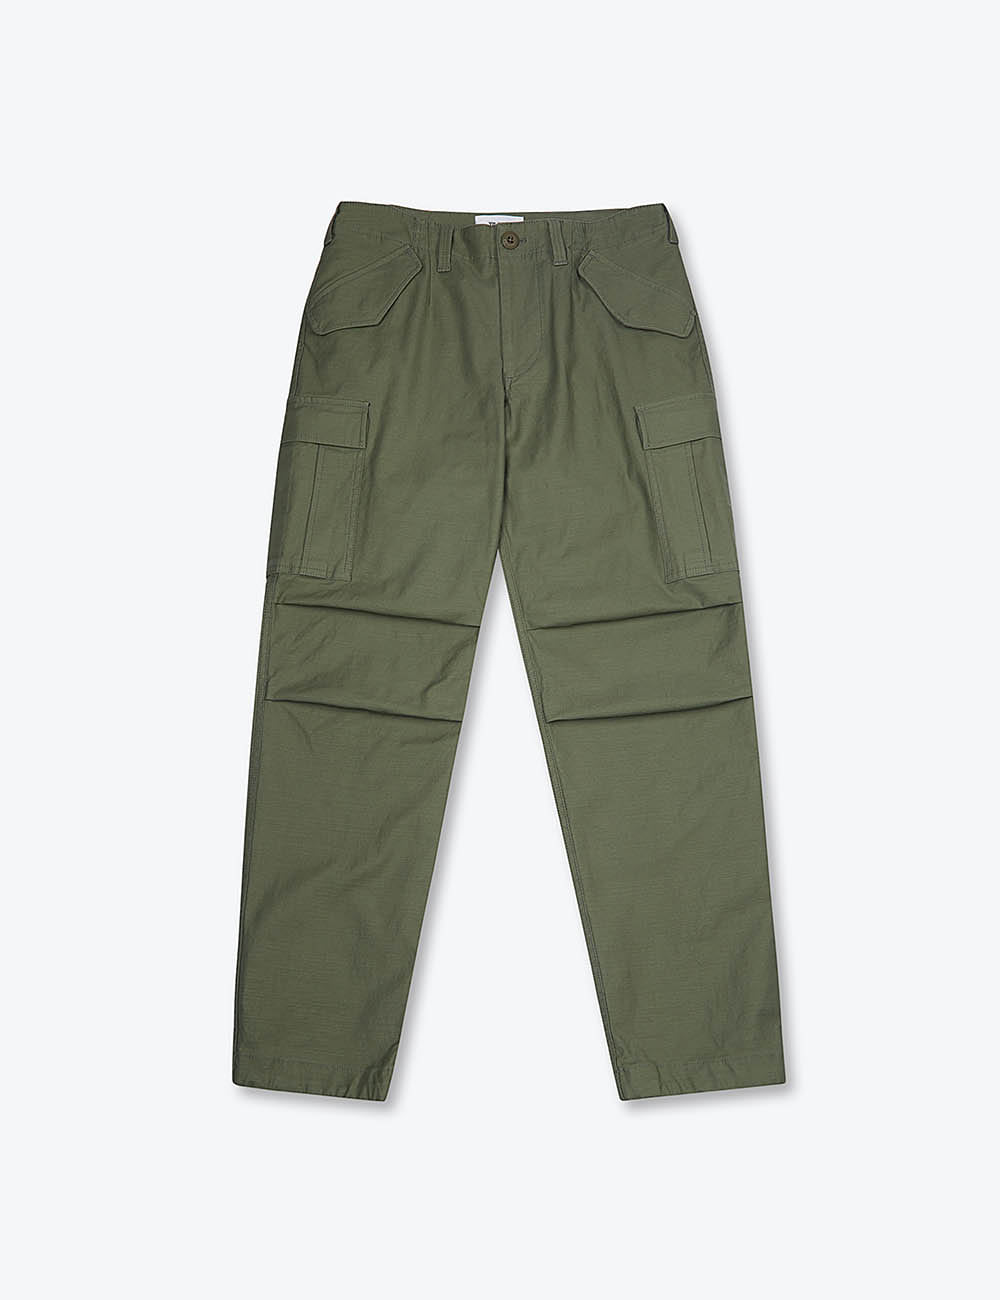 FIELD CARGO PANTS (KHAKI)